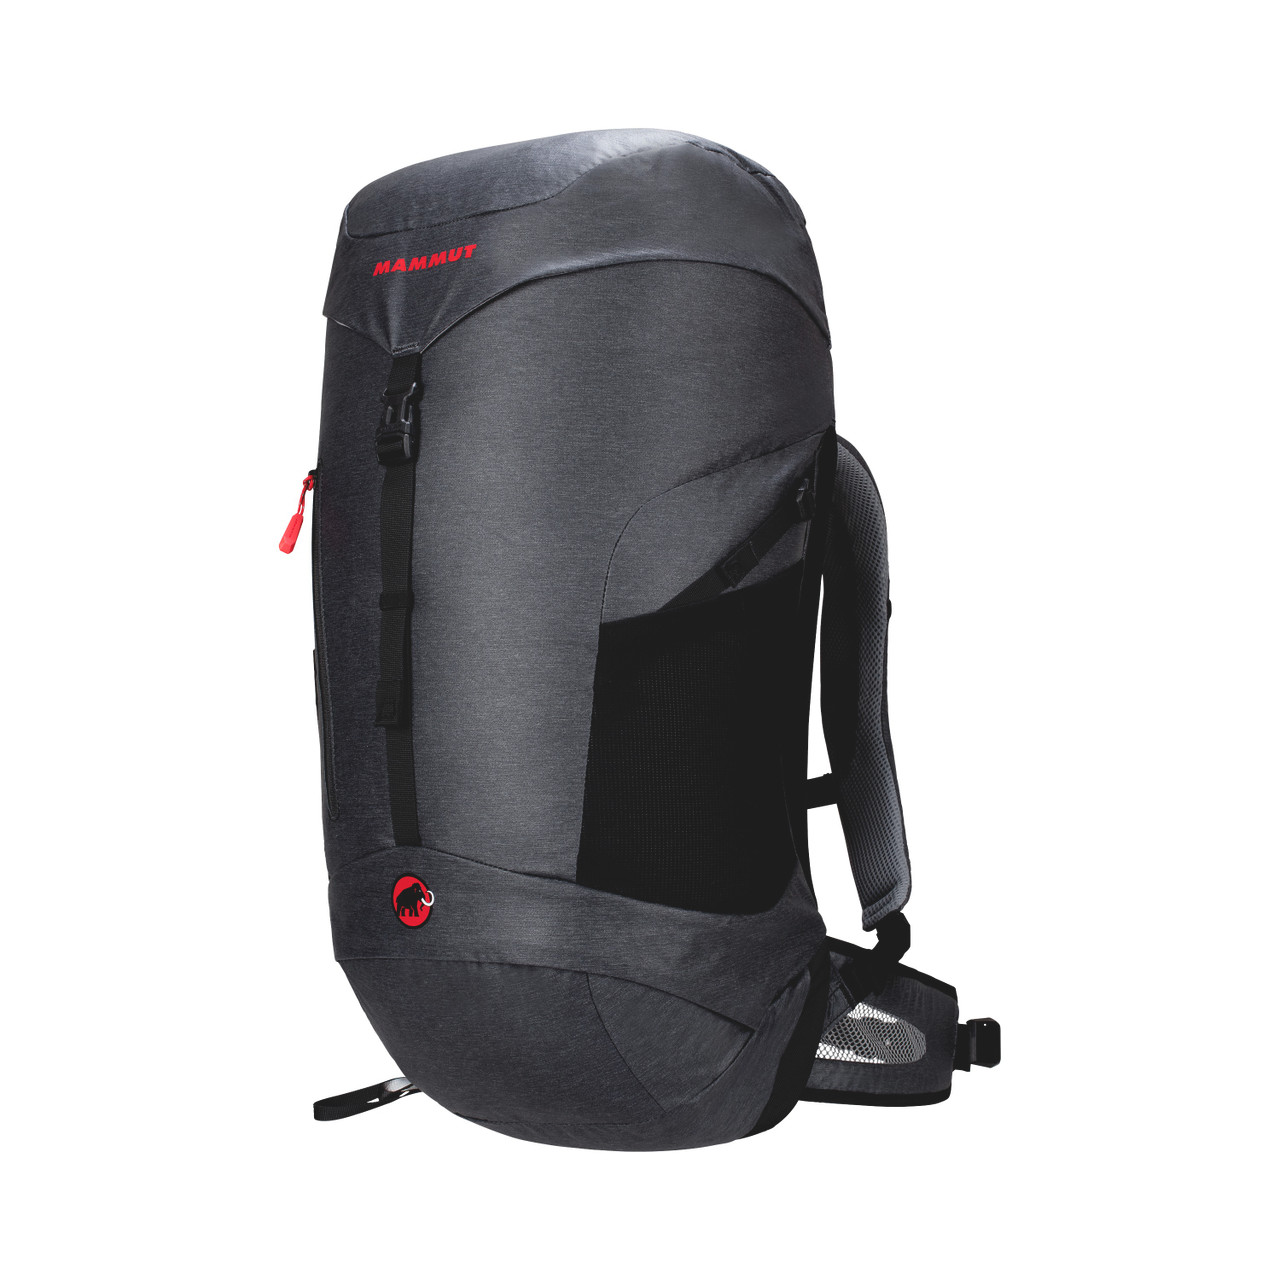 Mammut Creon Guide 35 L